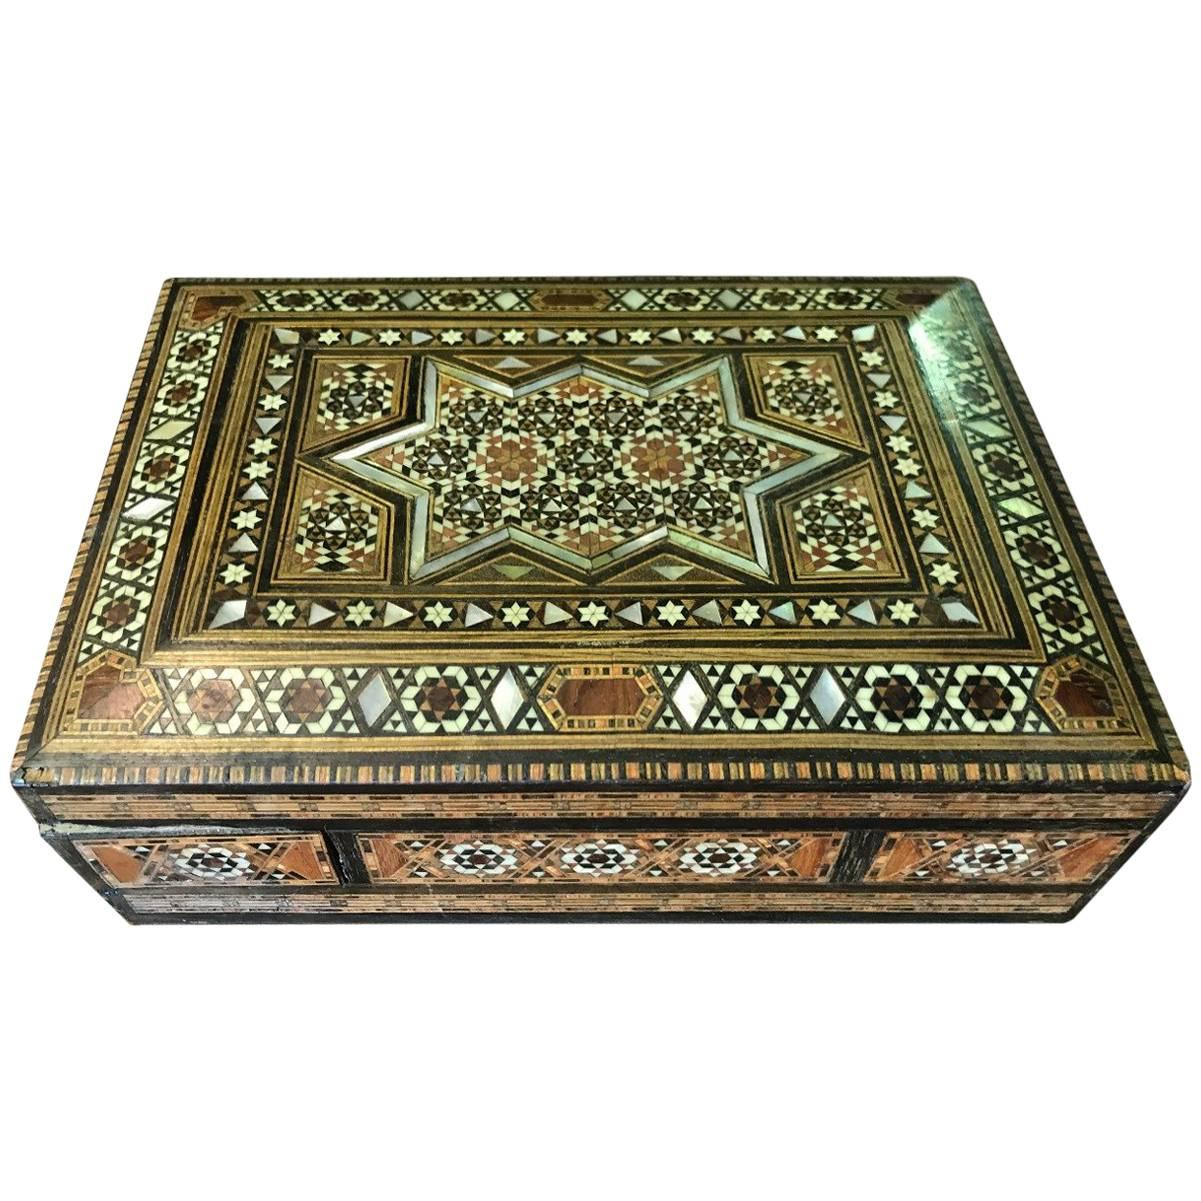 Syrian Inlaid Mosaic Secret Jewelry Box For Sale at 1stdibs